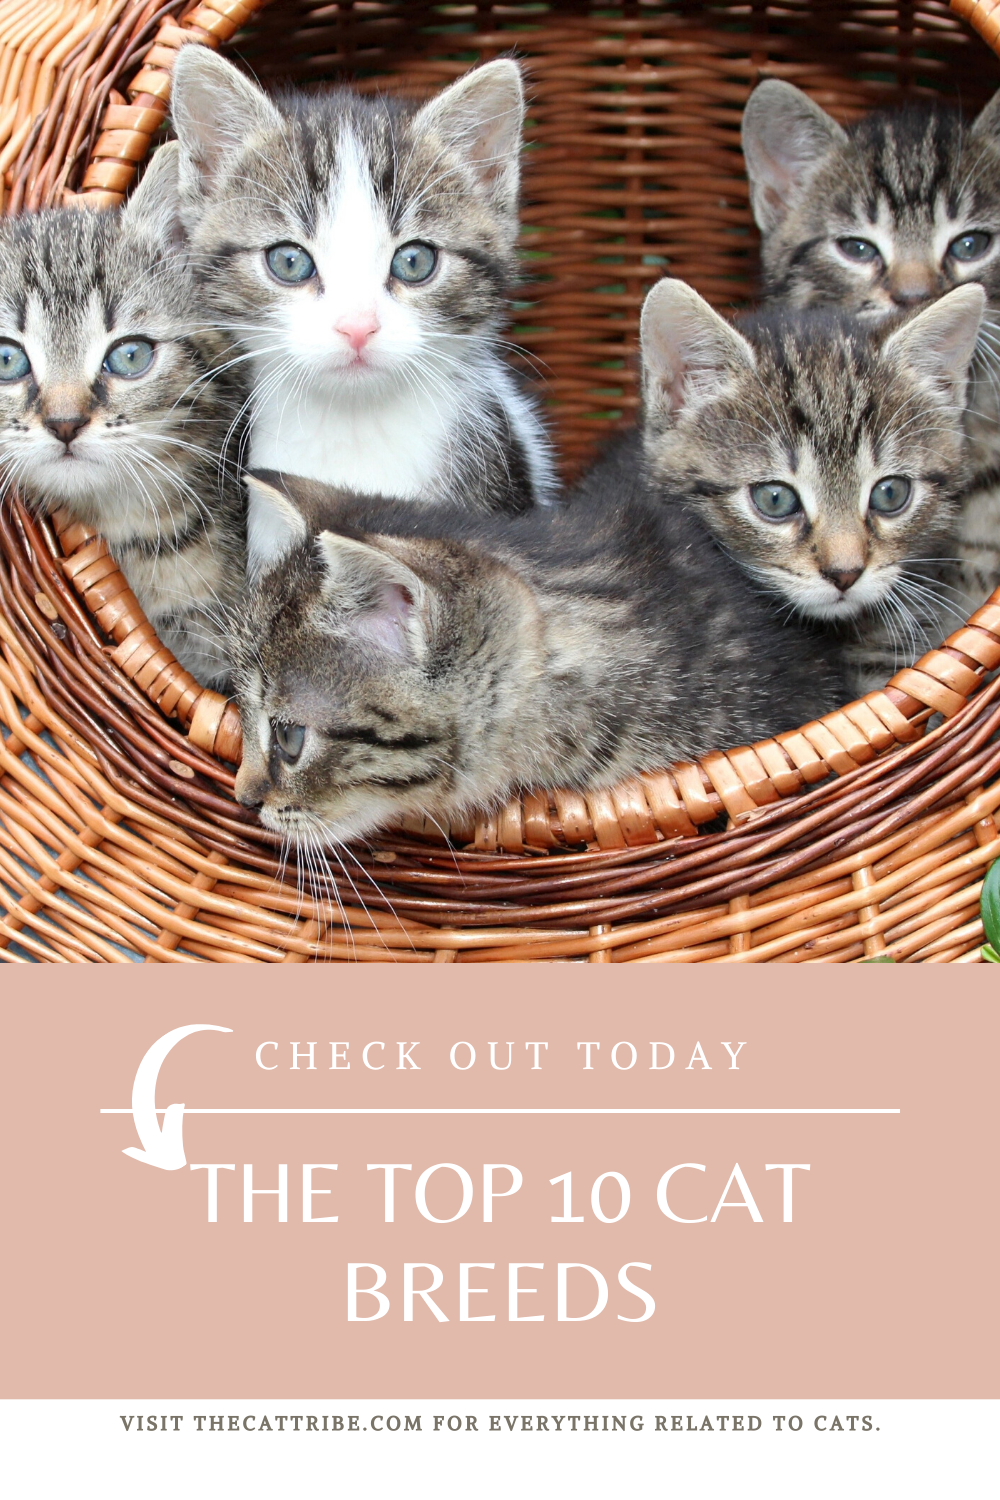 Check The Top 10 Cat Breeds, 7 Is So Cute! The Cat